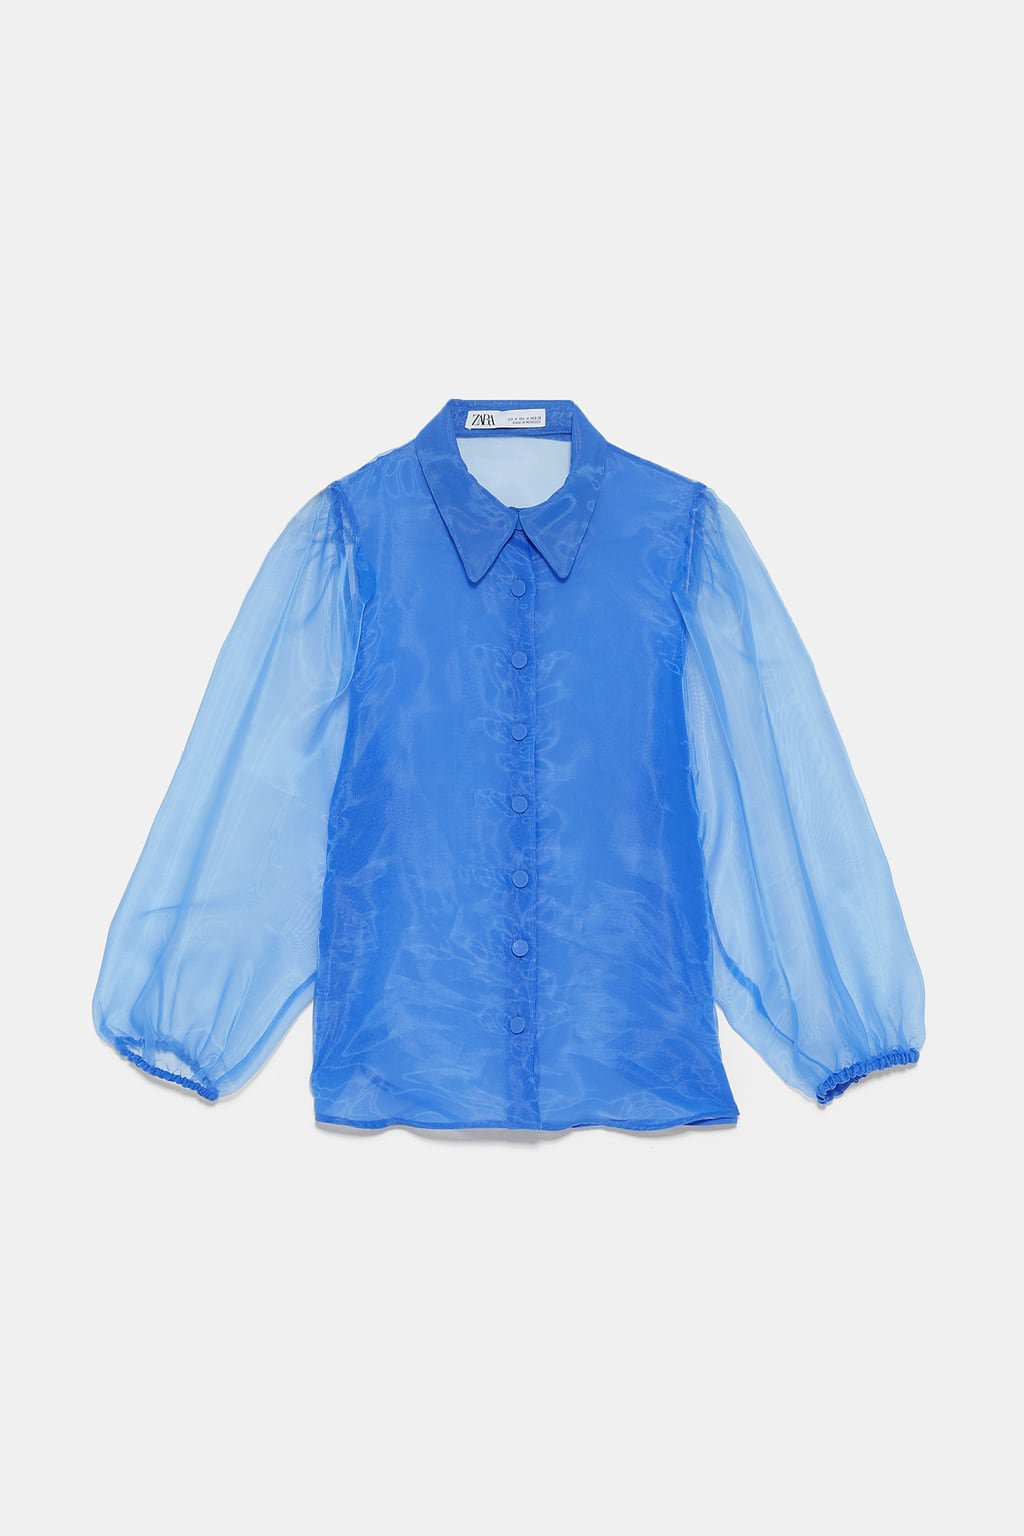 ORGANZA BLOUSE WITH FULL SLEEVES - View All-SHIRTS | BLOUSES-WOMAN | ZARA United States blue